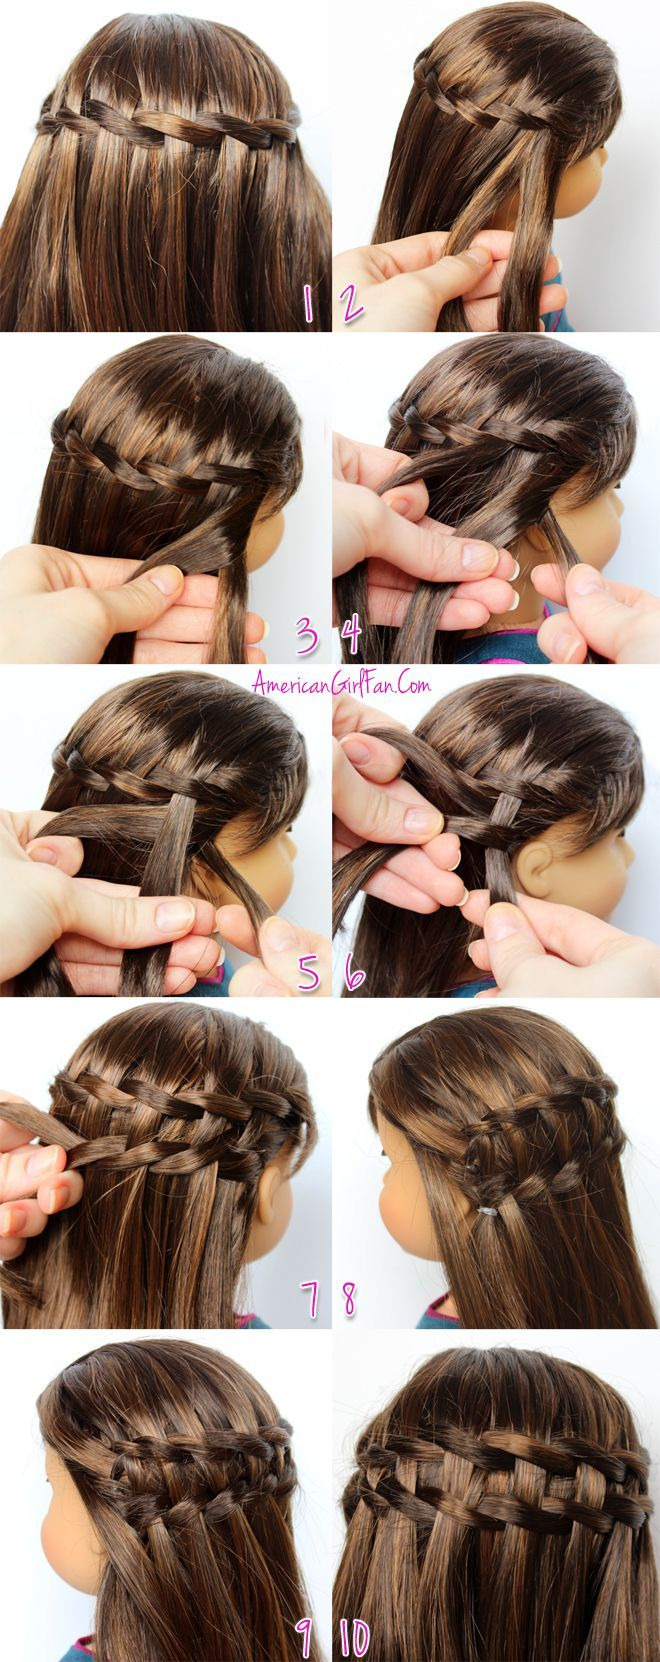 best 25+ american girl hairstyles ideas on pinterest | ag doll